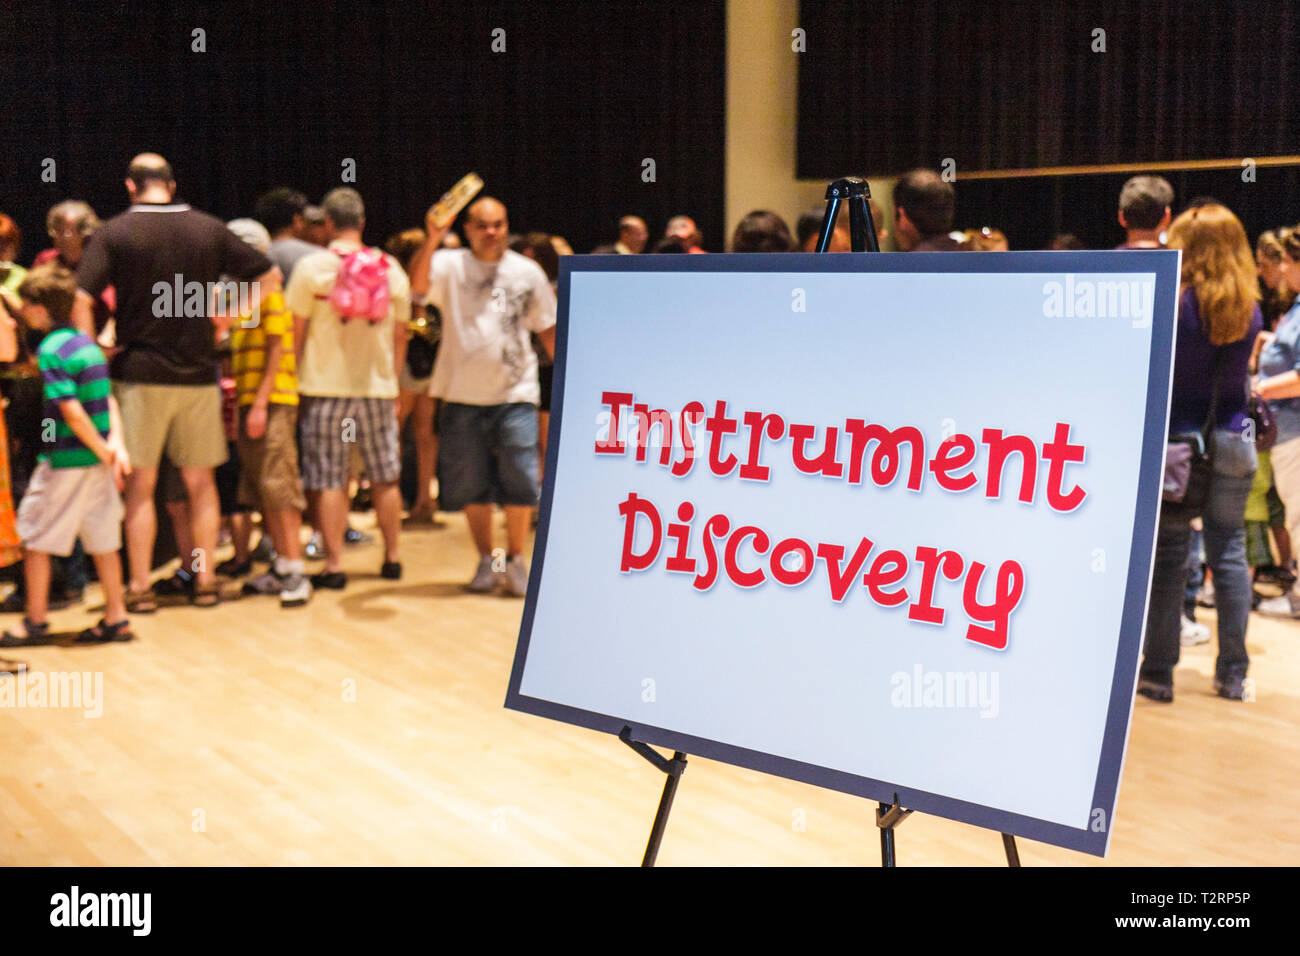 Miami Florida Adrienne Arsht Performing Arts Center centre Family Fest Instrument Discovery music hands on sign art education - Stock Image